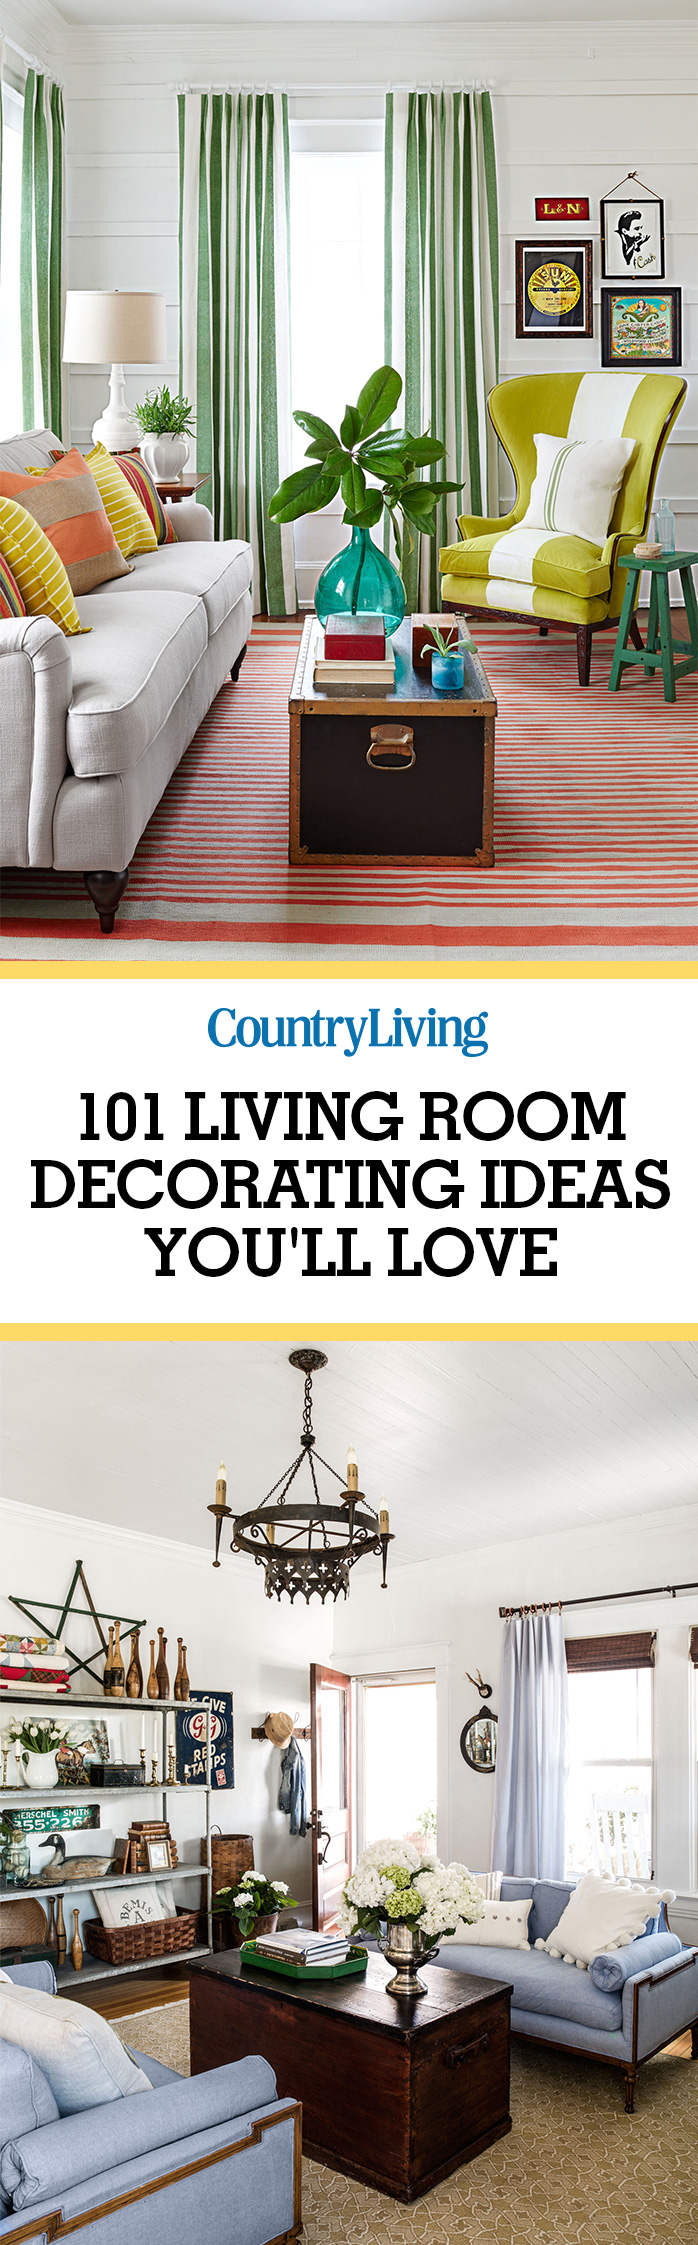 100 Living Room Decorating IdeasDesign Photos of Family Rooms